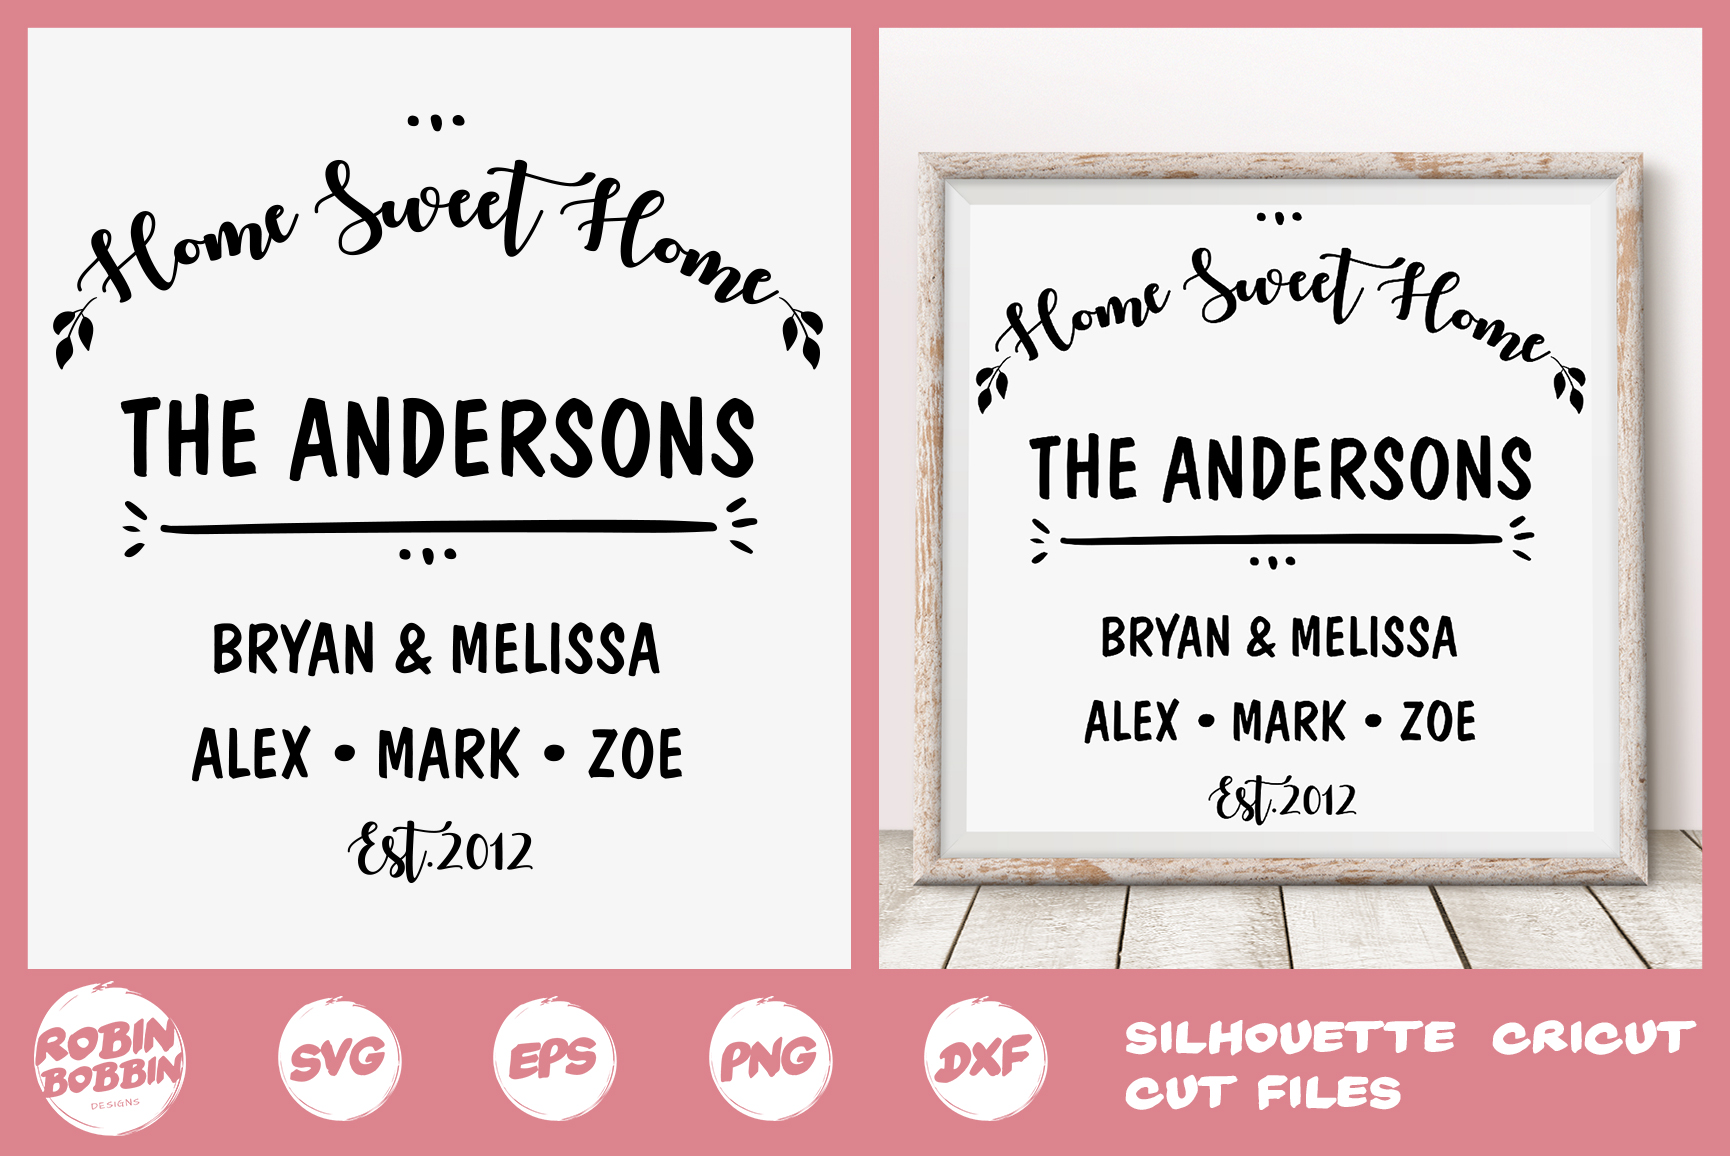 Download Free Home Sweet Home Sign Graphic By Robinbobbindesign Creative Fabrica for Cricut Explore, Silhouette and other cutting machines.